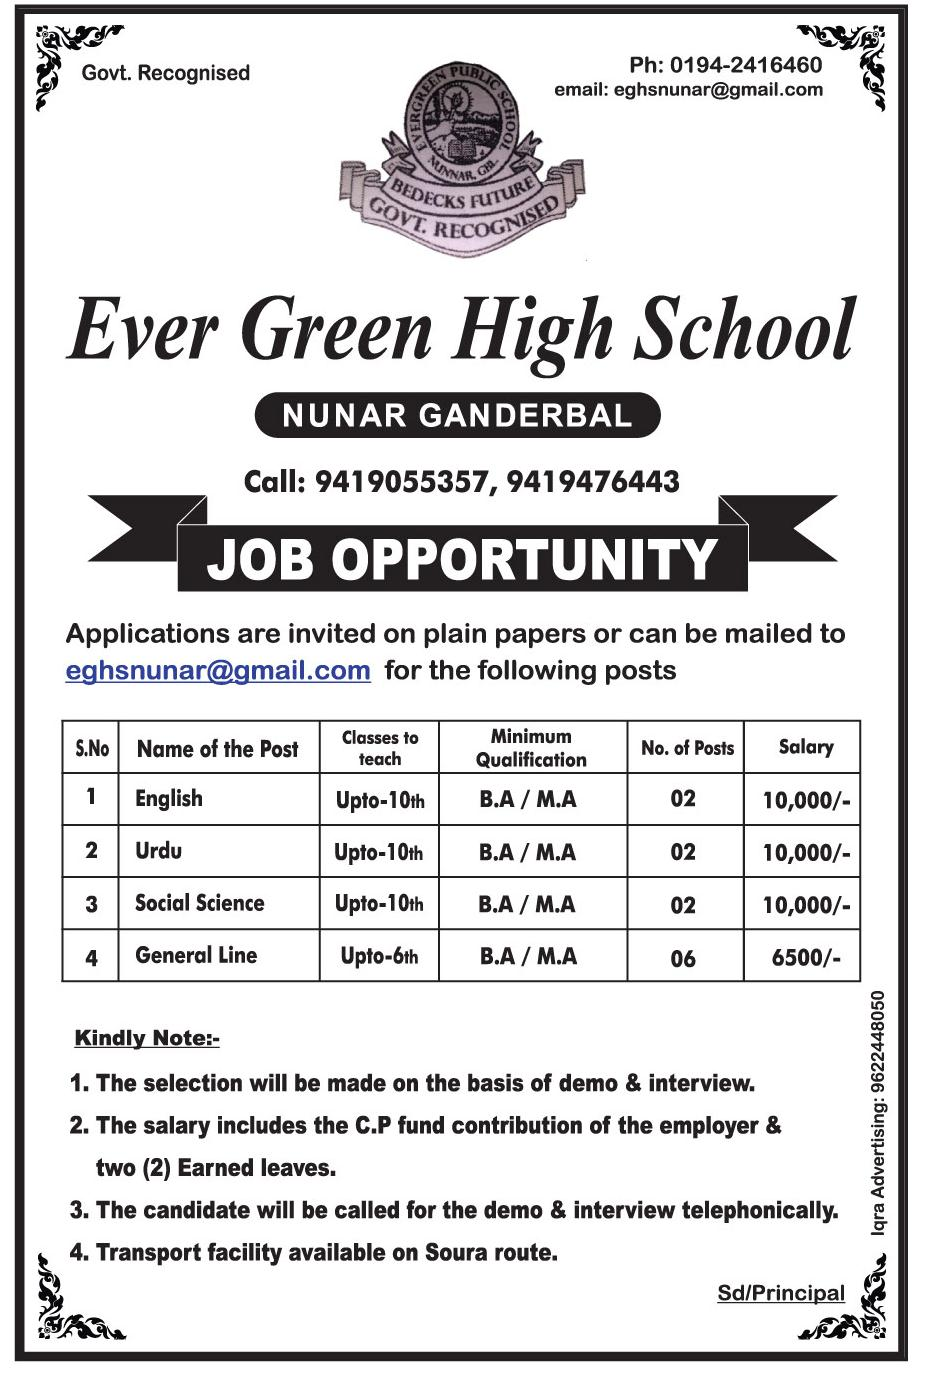 Ever Green High School Ganderbal requires Teachers